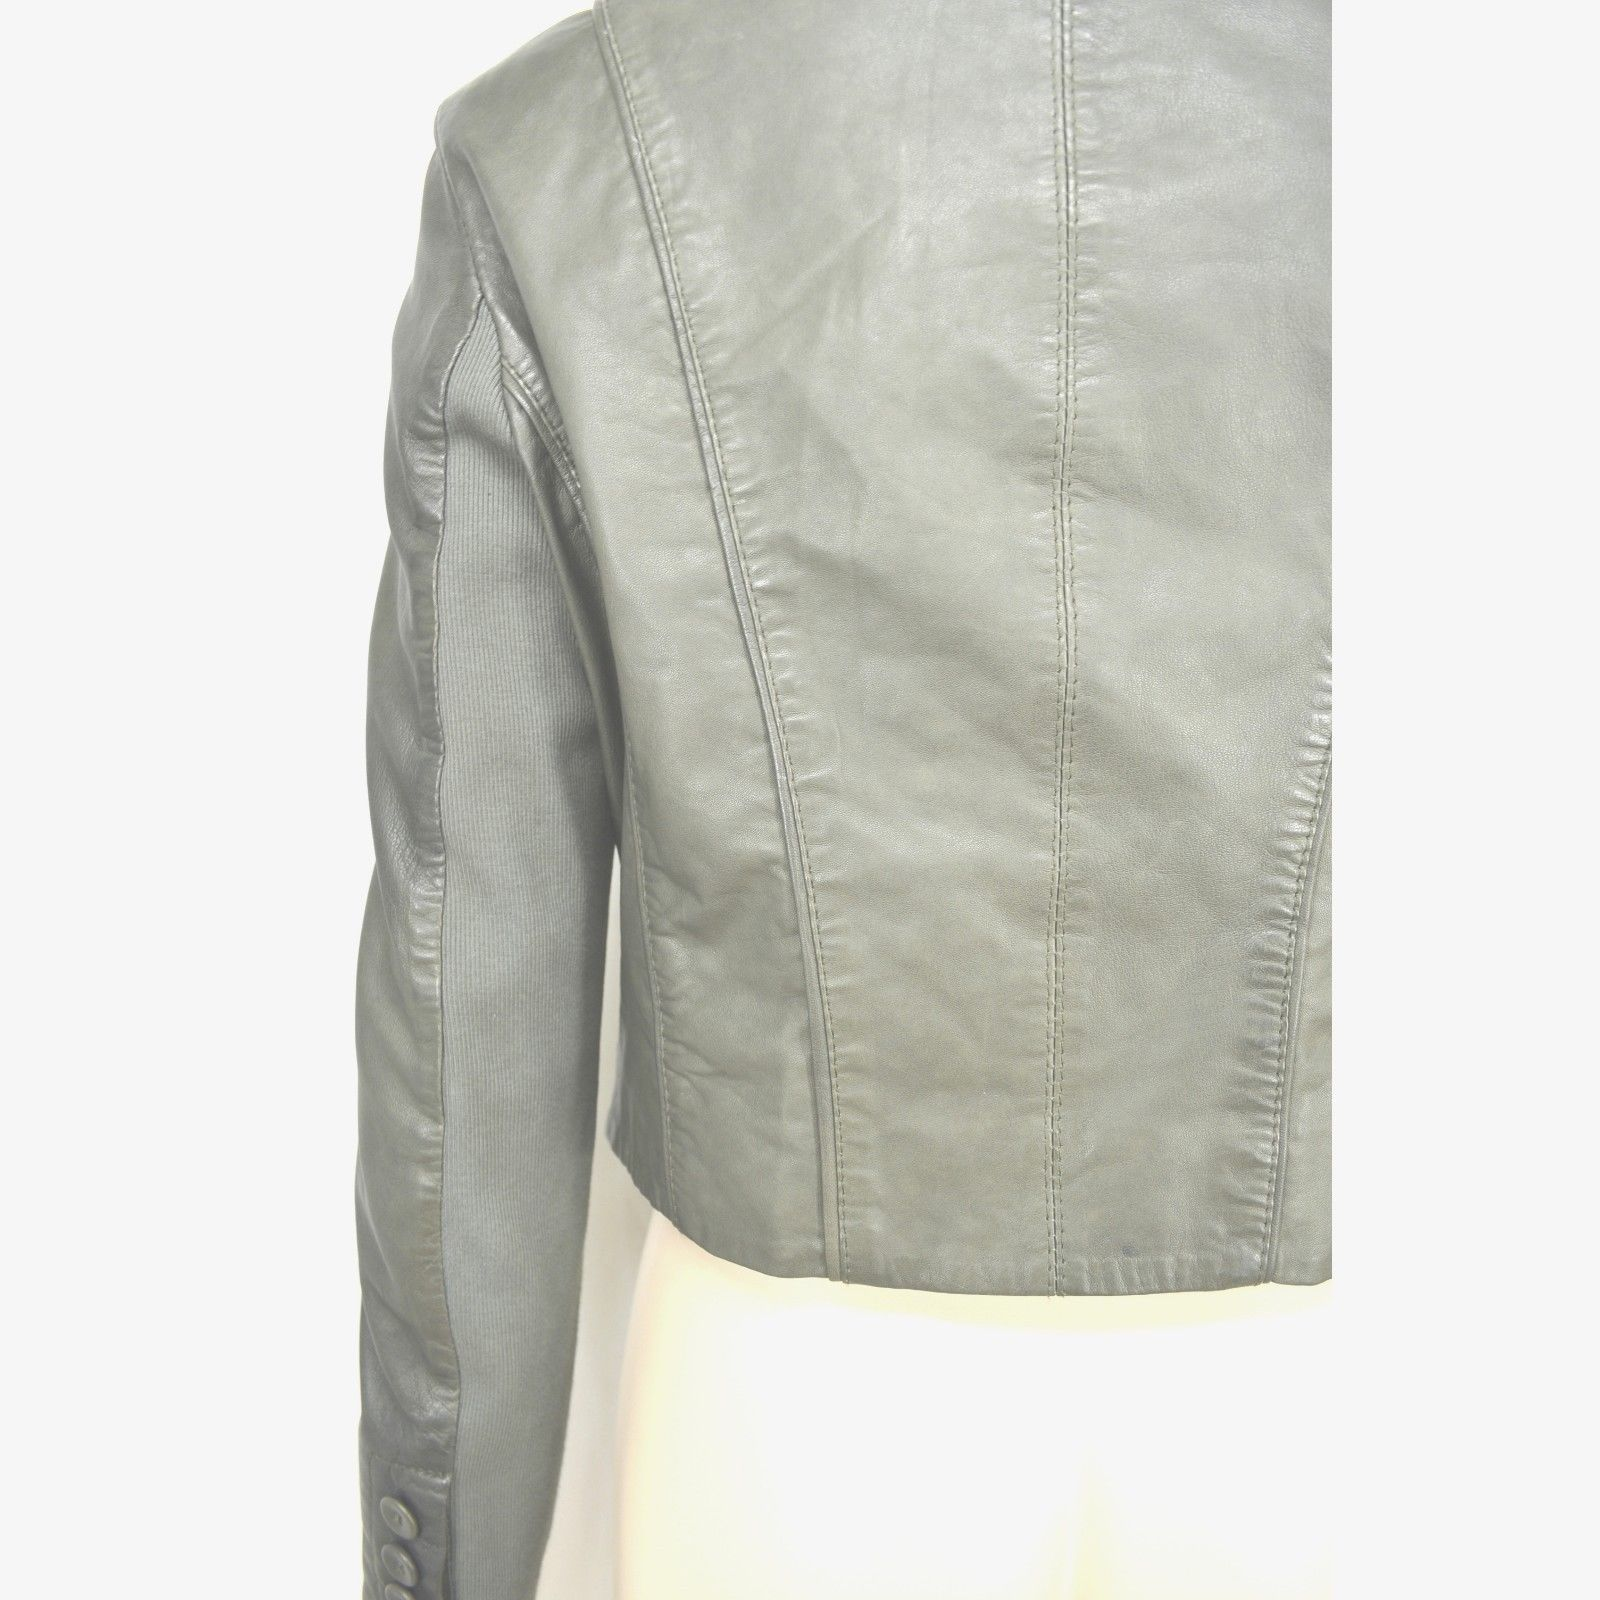 MUUBAA lambskin soft leather jacket SZ 8 Moss Army Gray asymmetric buttoned image 5